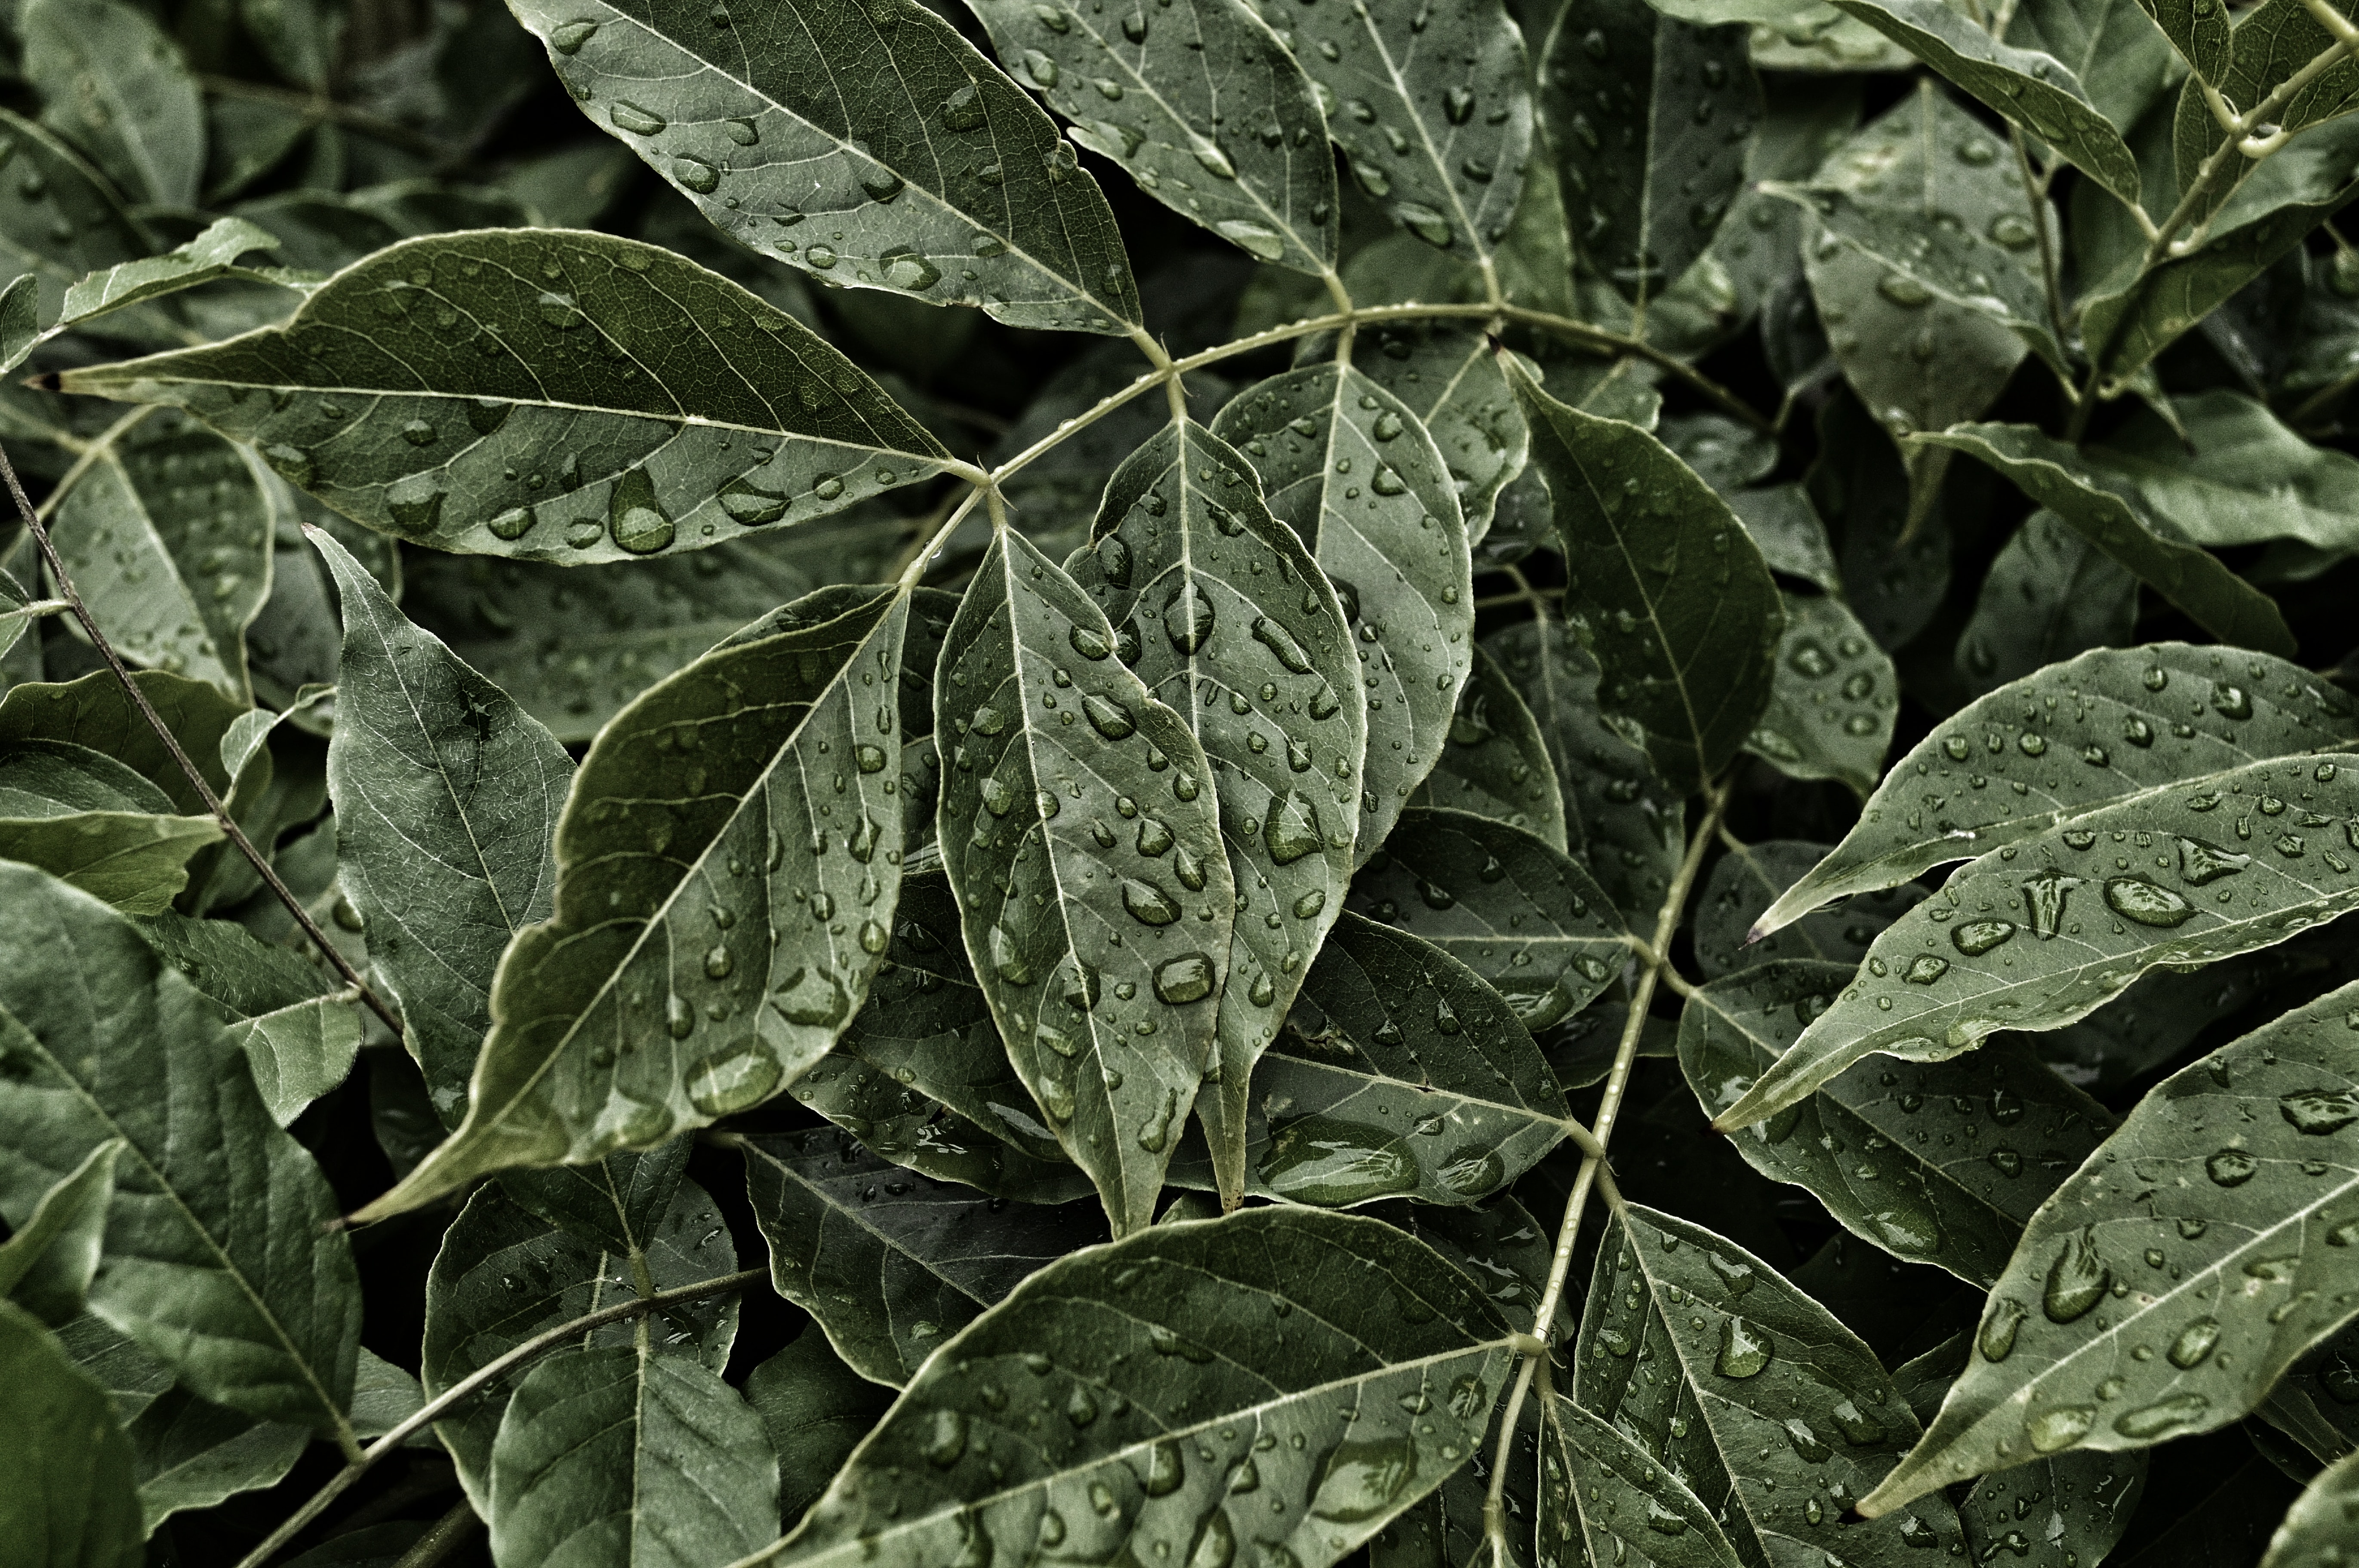 Close-up of large dewdrops on dark green leaves